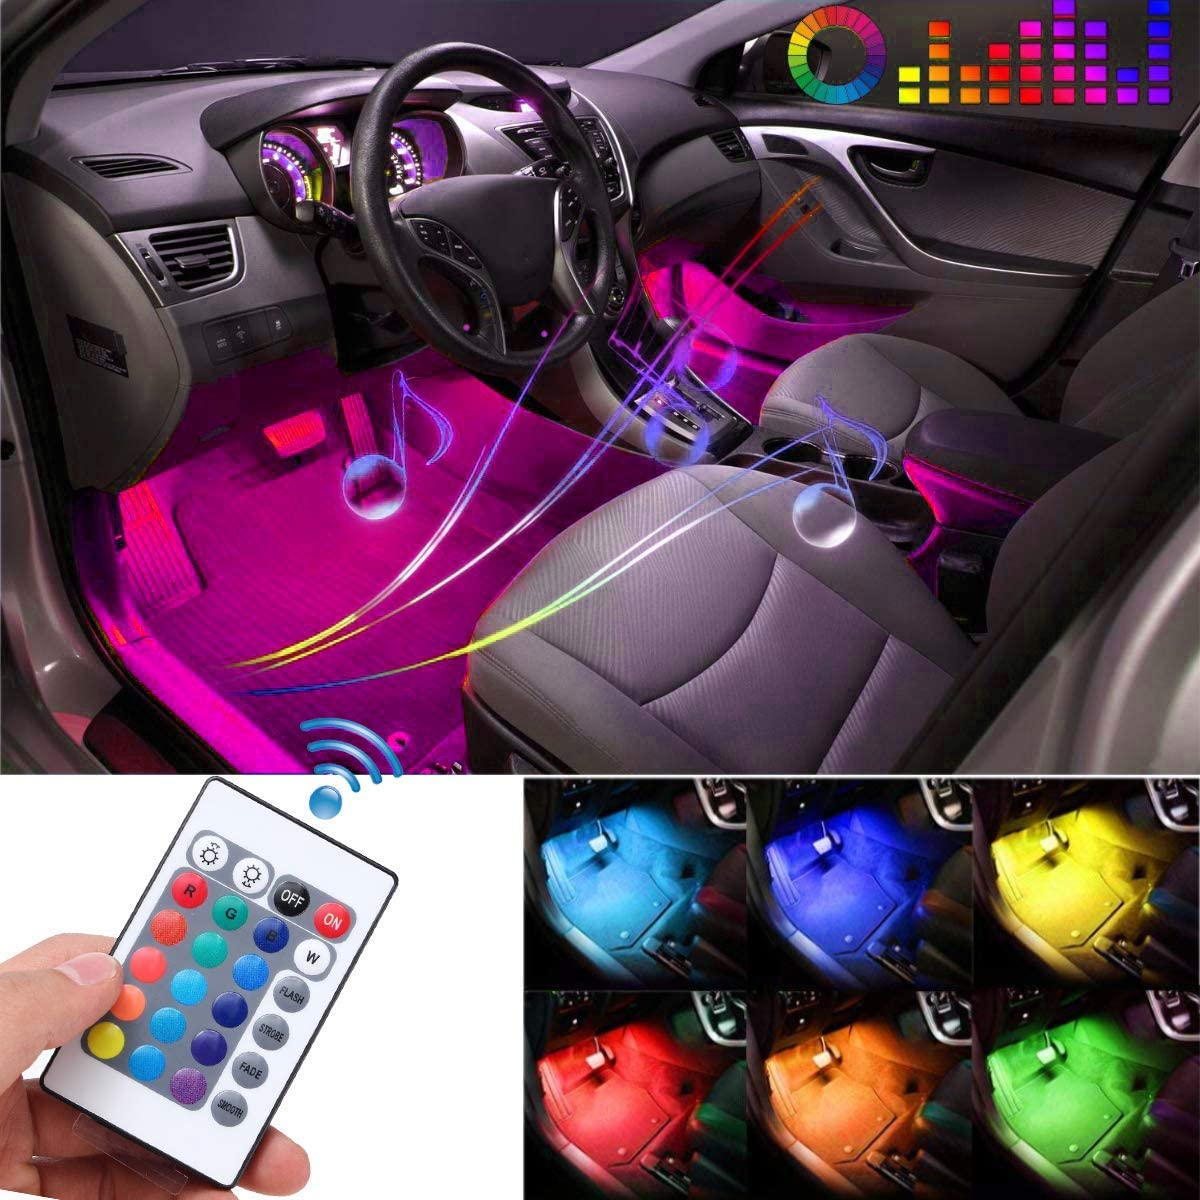 DC 12V 4pcs 36LED RGB Multicolor Music Car Interior Lights Under Dash Lighting Waterproof Kit with Sound Active Function and Wireless Remote Control Yolu Car LED Strip Light USB Port